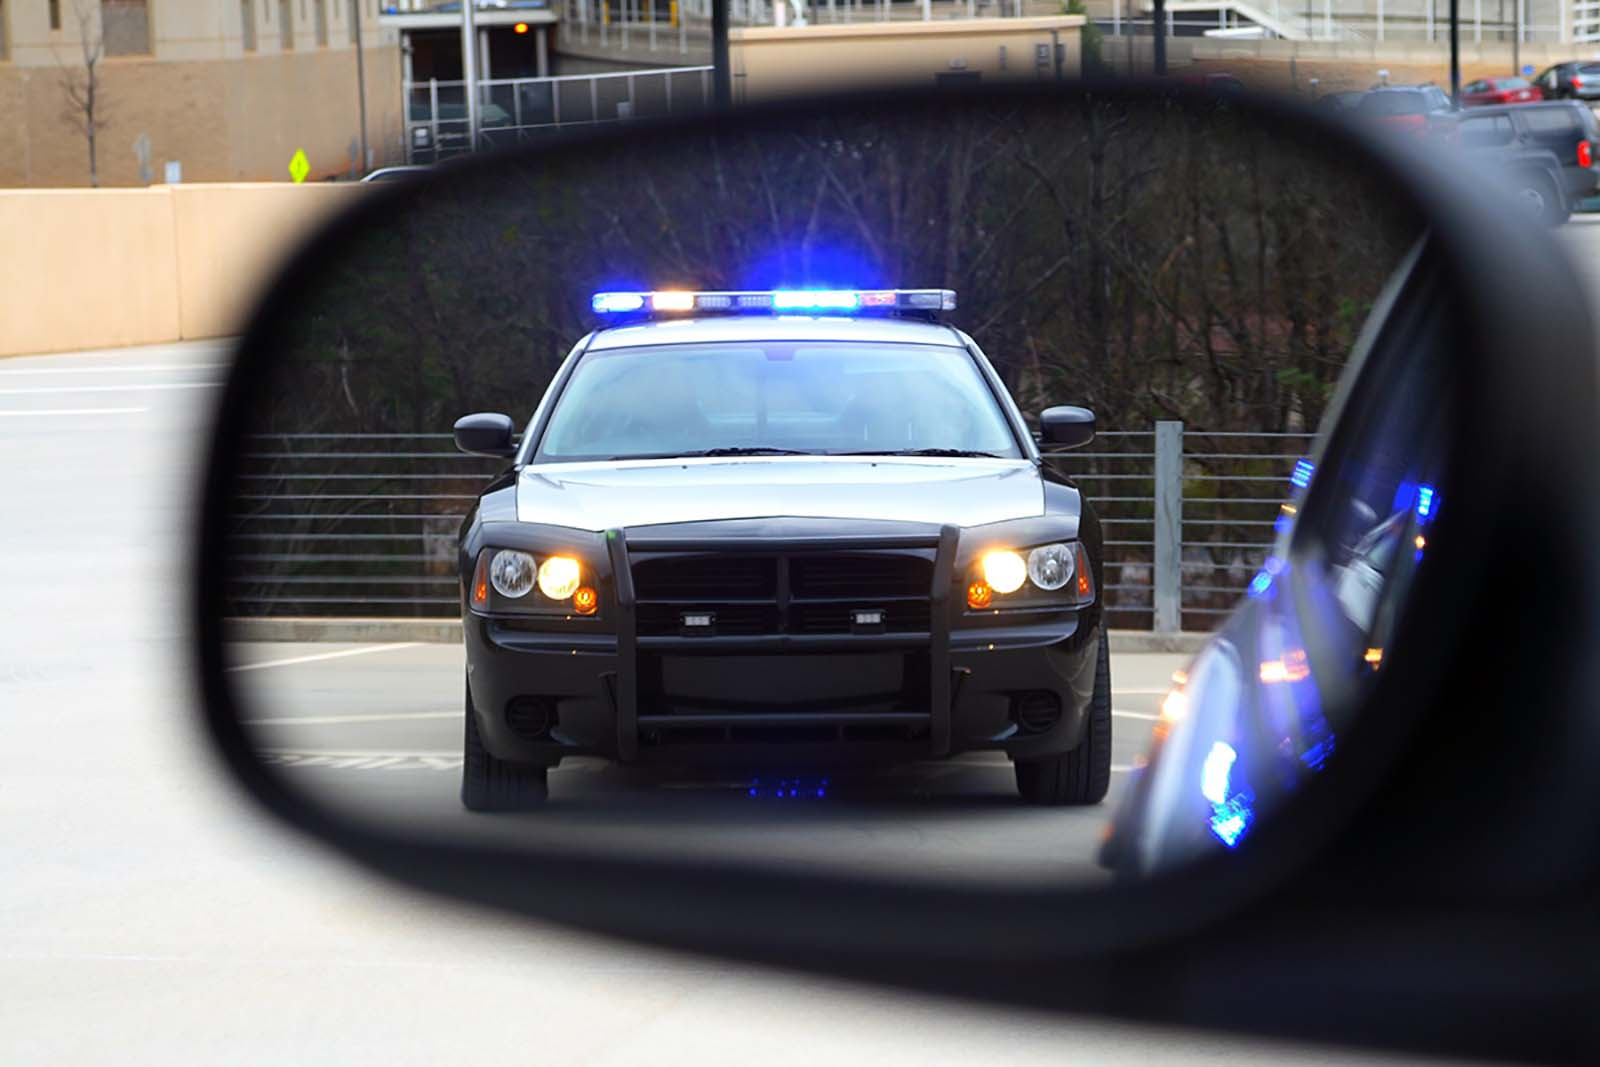 Criminal Law and Drug Possession in Greenville, South